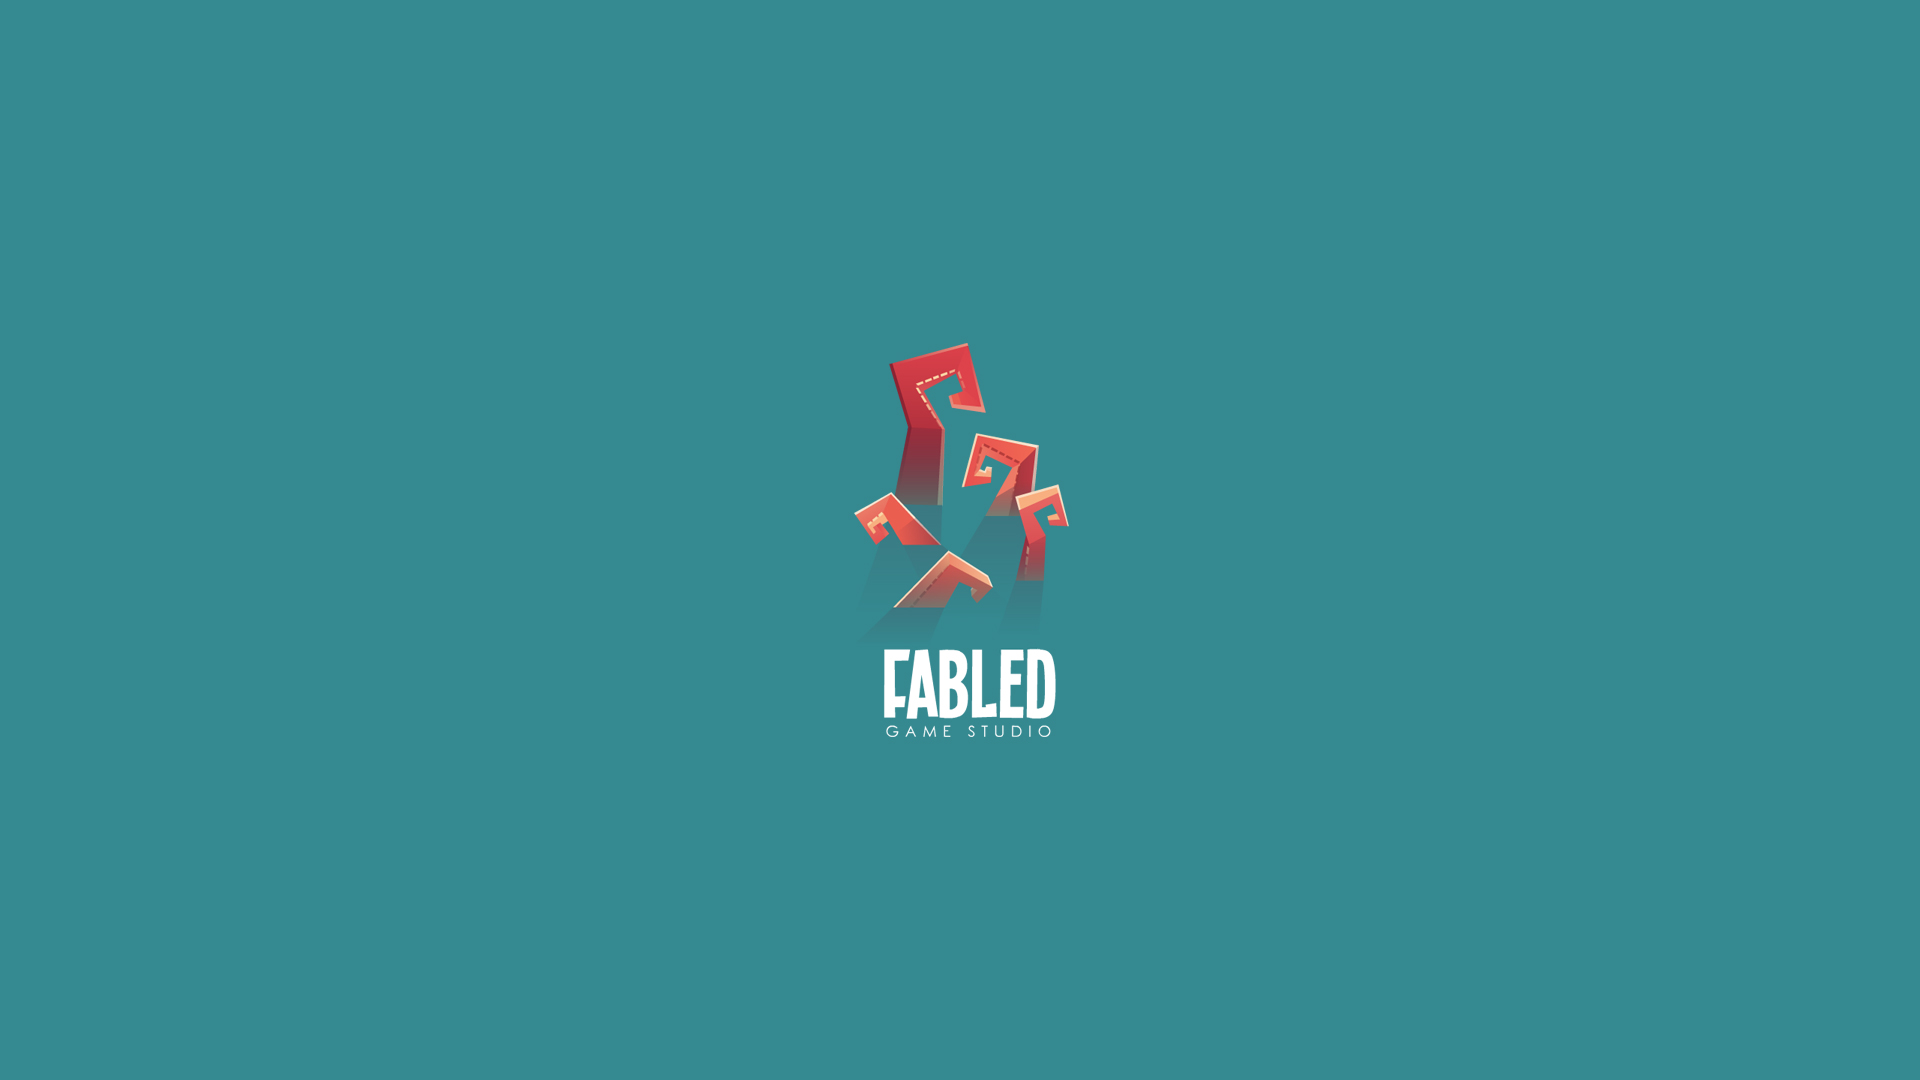 FABLED GAME STUDIO - The studio has been created to bring together passionate and creative members as a team...